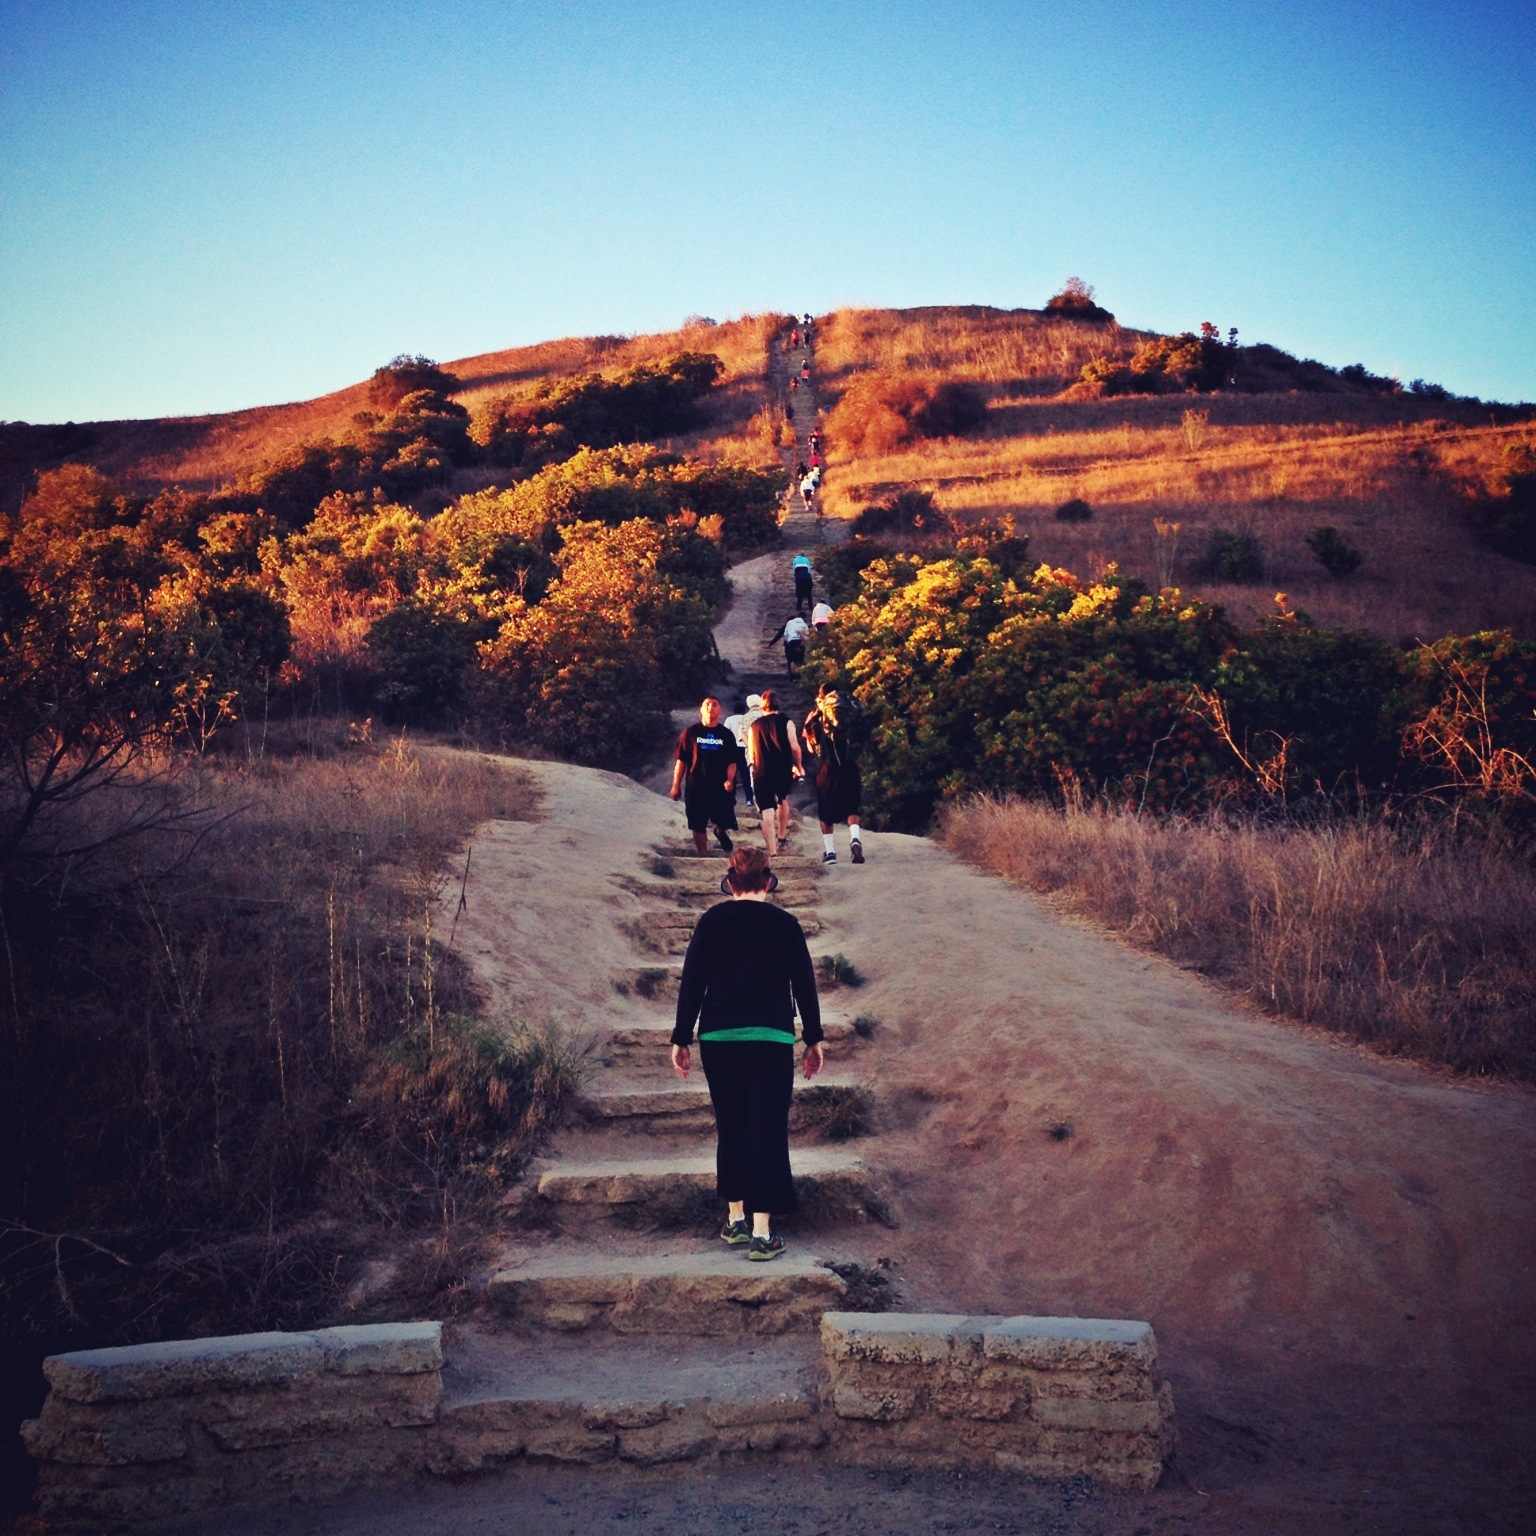 Stairs up to the Baldwin Hills Scenic Overlook